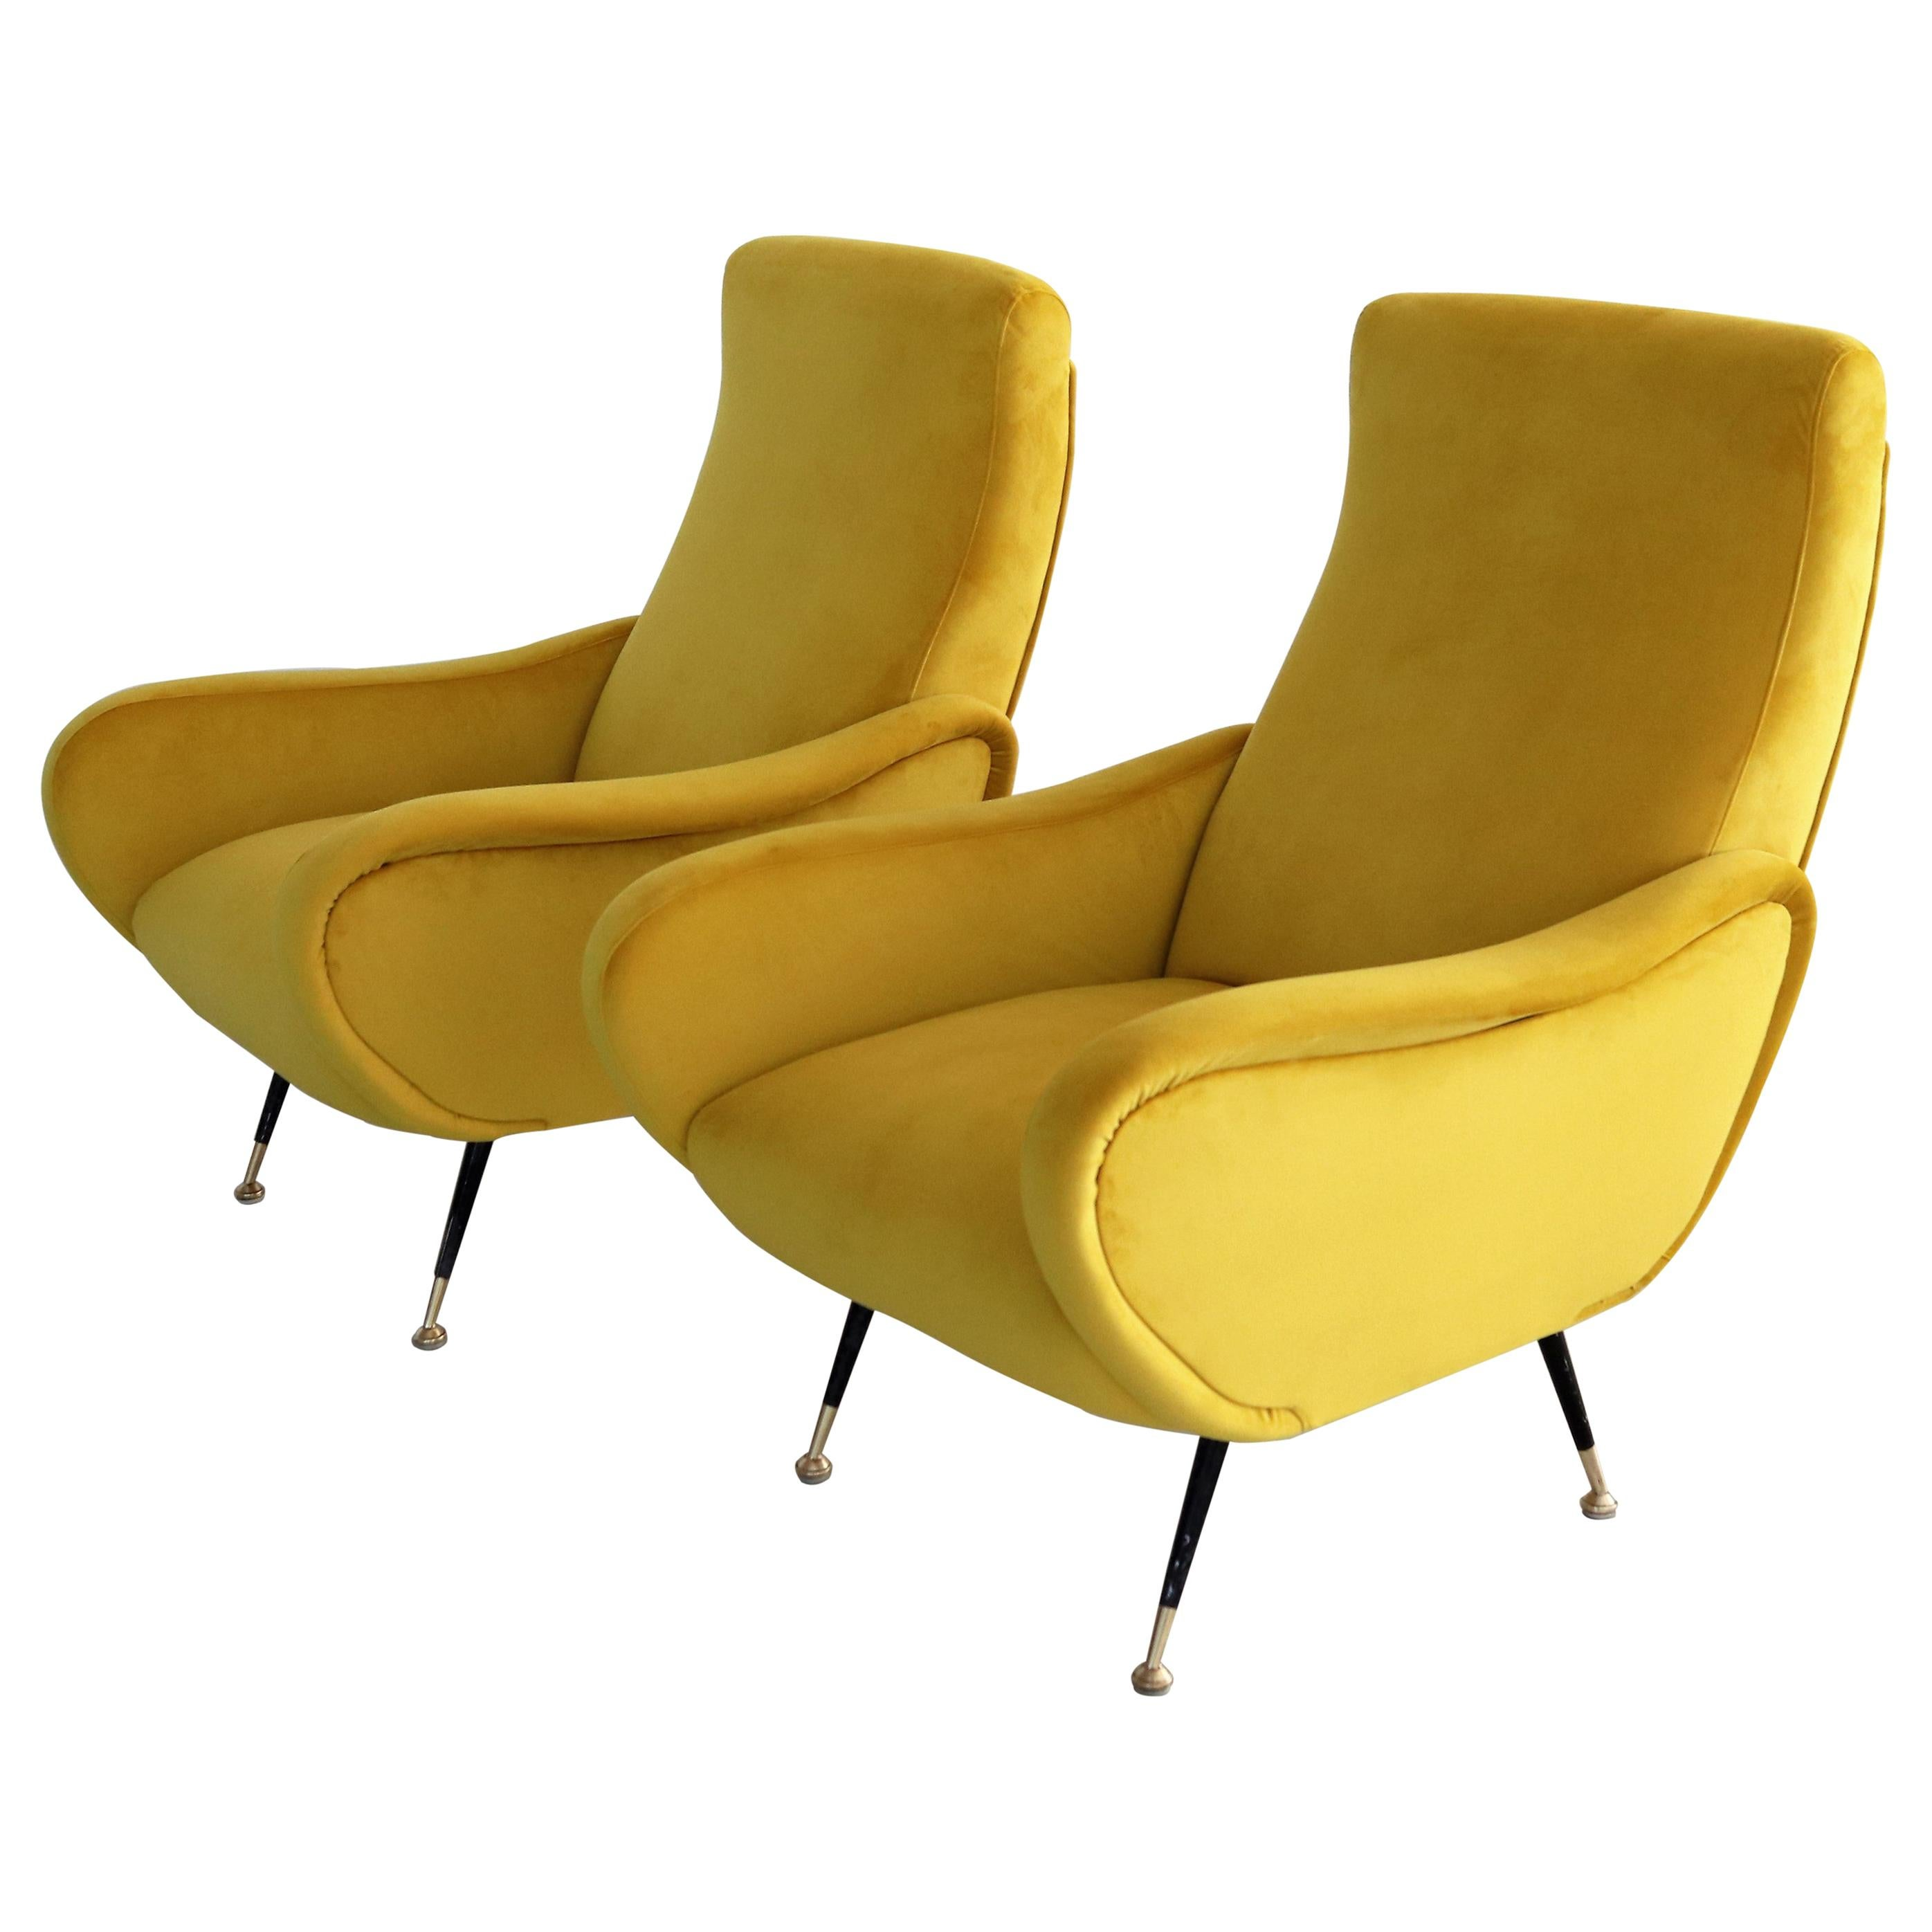 Italian Vintage Armchairs in Yellow Velvet and Brass Stiletto Feet, 1950s